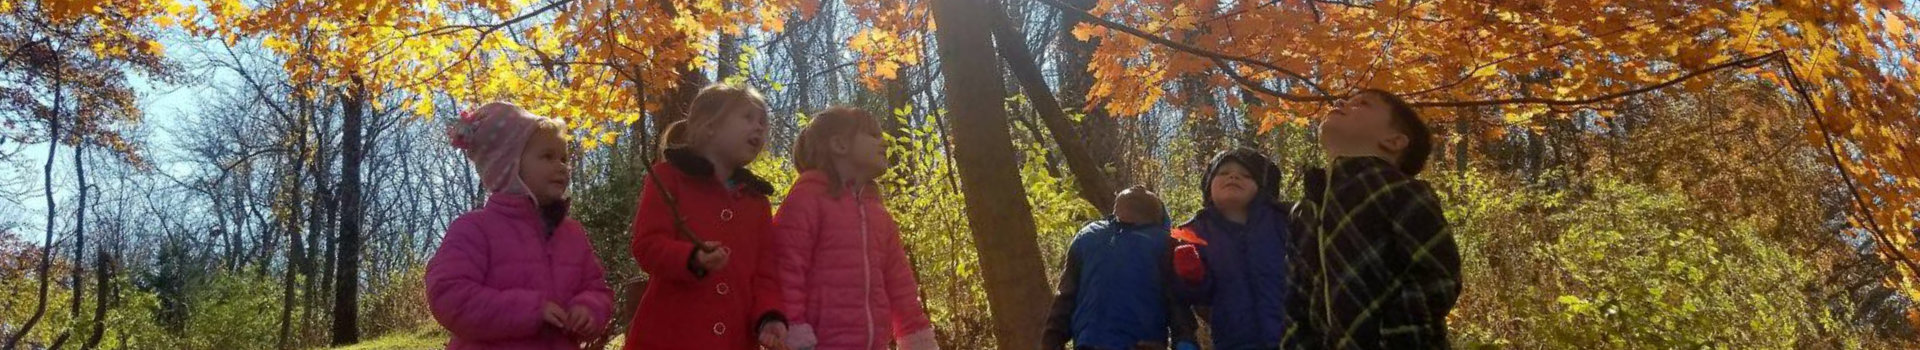 Group of children under automn trees